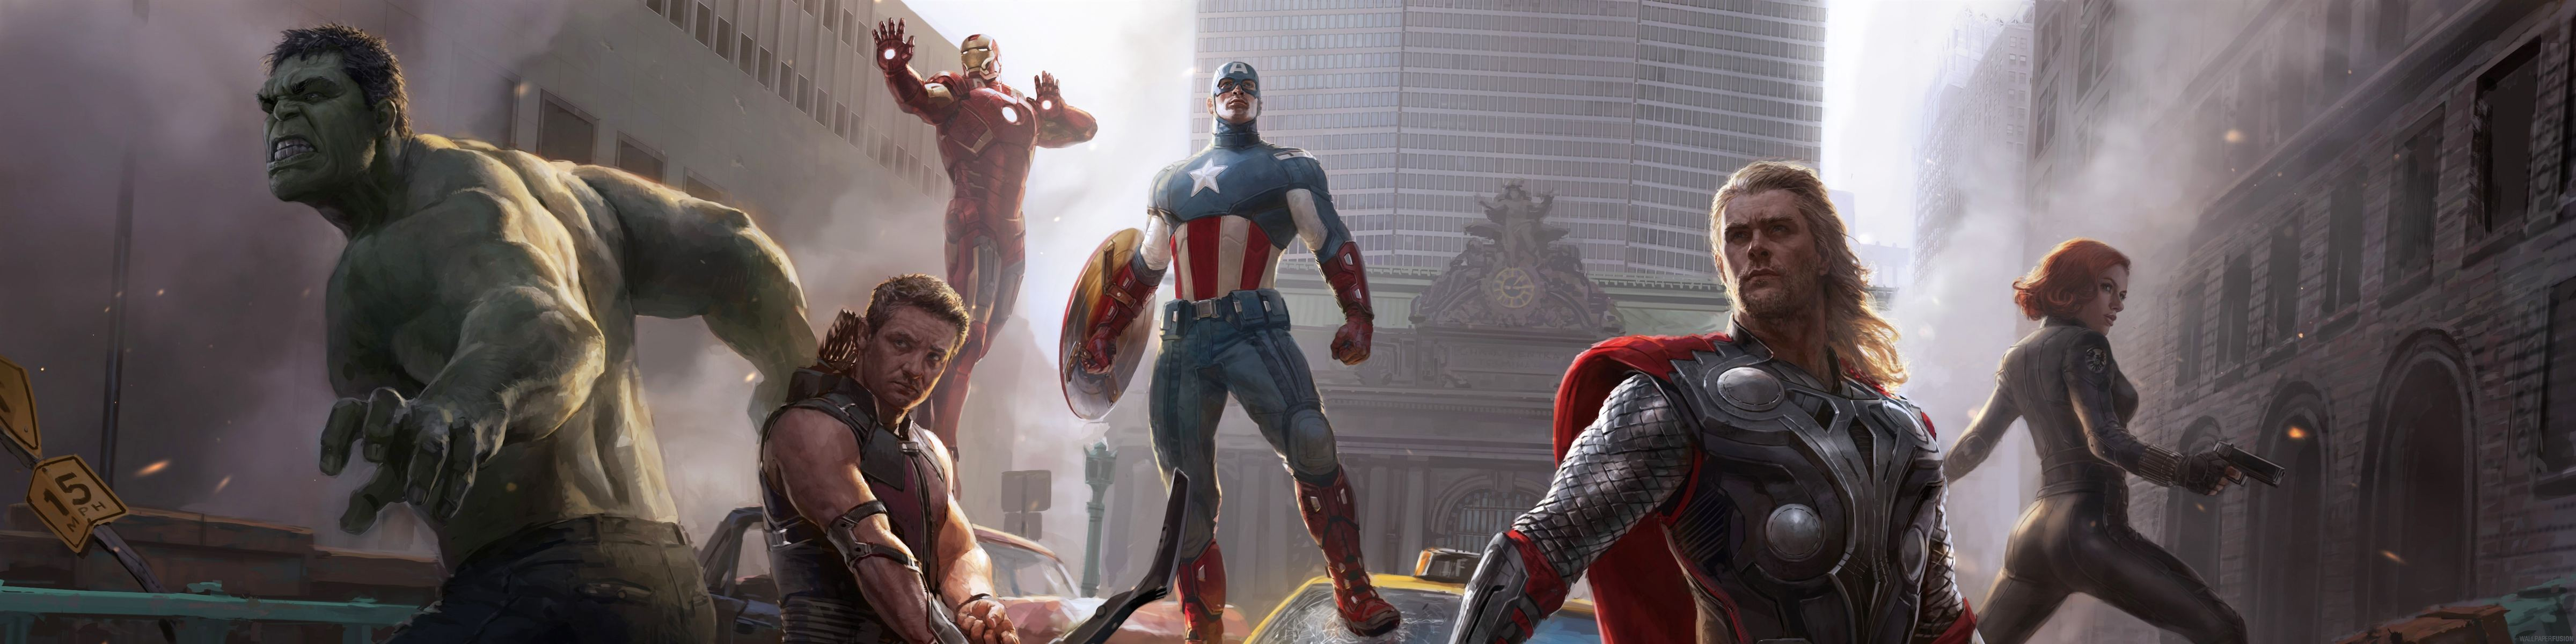 4800x1200 Avengers Age of Ultron Team Wallpaper 14 - 4800 X 1200 | Imgnooz.com